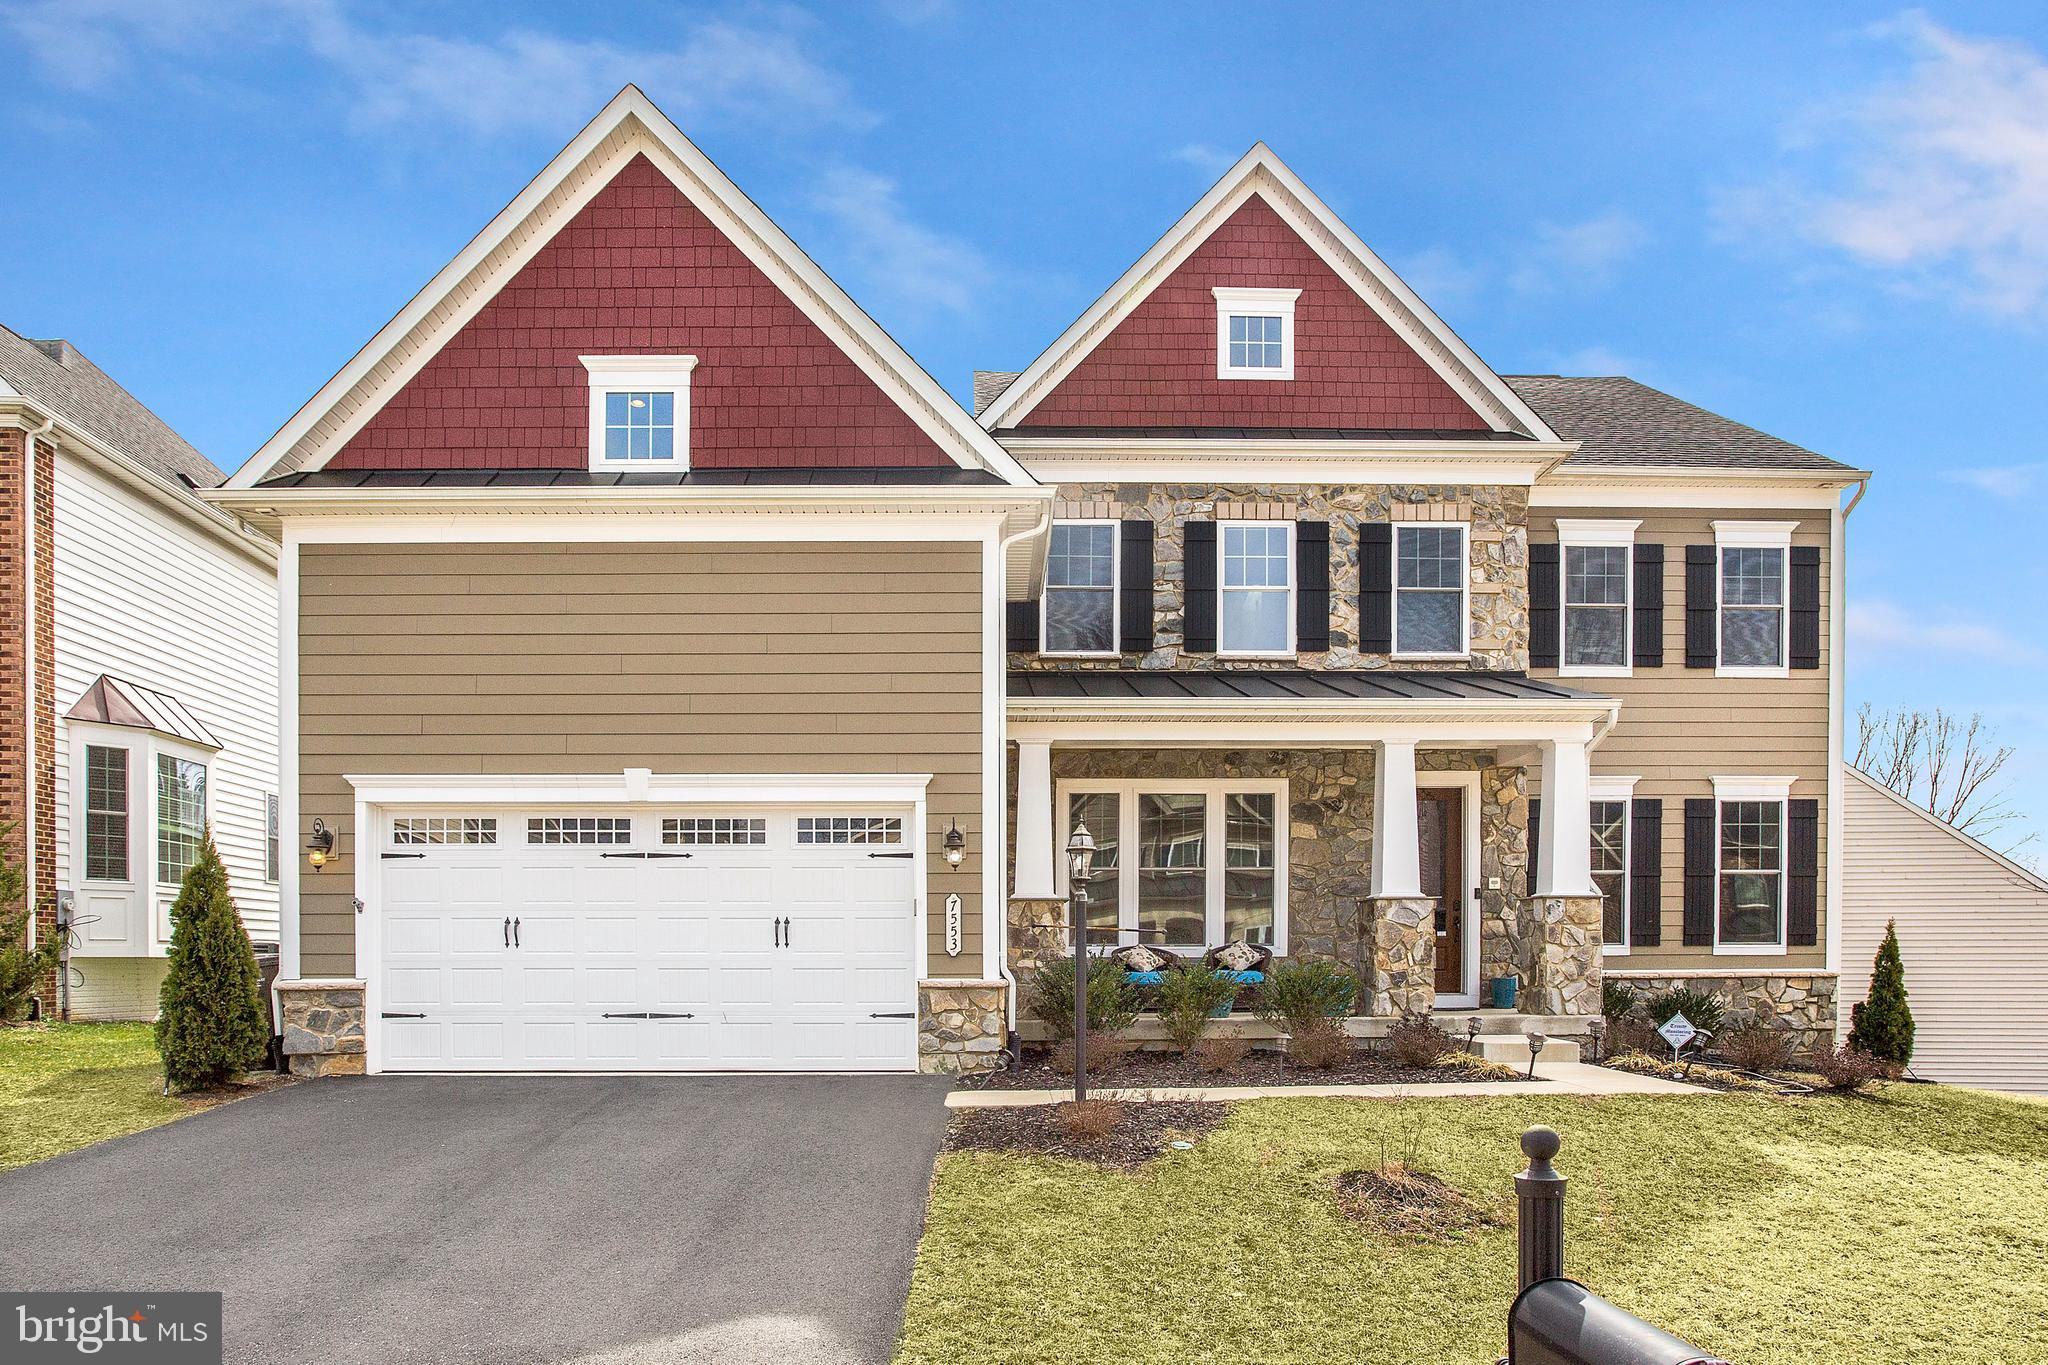 Amazing opportunity to live in the exclusive Gambrill Pointe community on one of the largest lots. Large custom deck with a double-sided fireplace serving outside and inside. Exceptionally large gourmet kitchen. Spacious partially finished basement. Beautiful master suite with attached sitting room. Option for 6th bedroom.  Do not miss this opportunity!